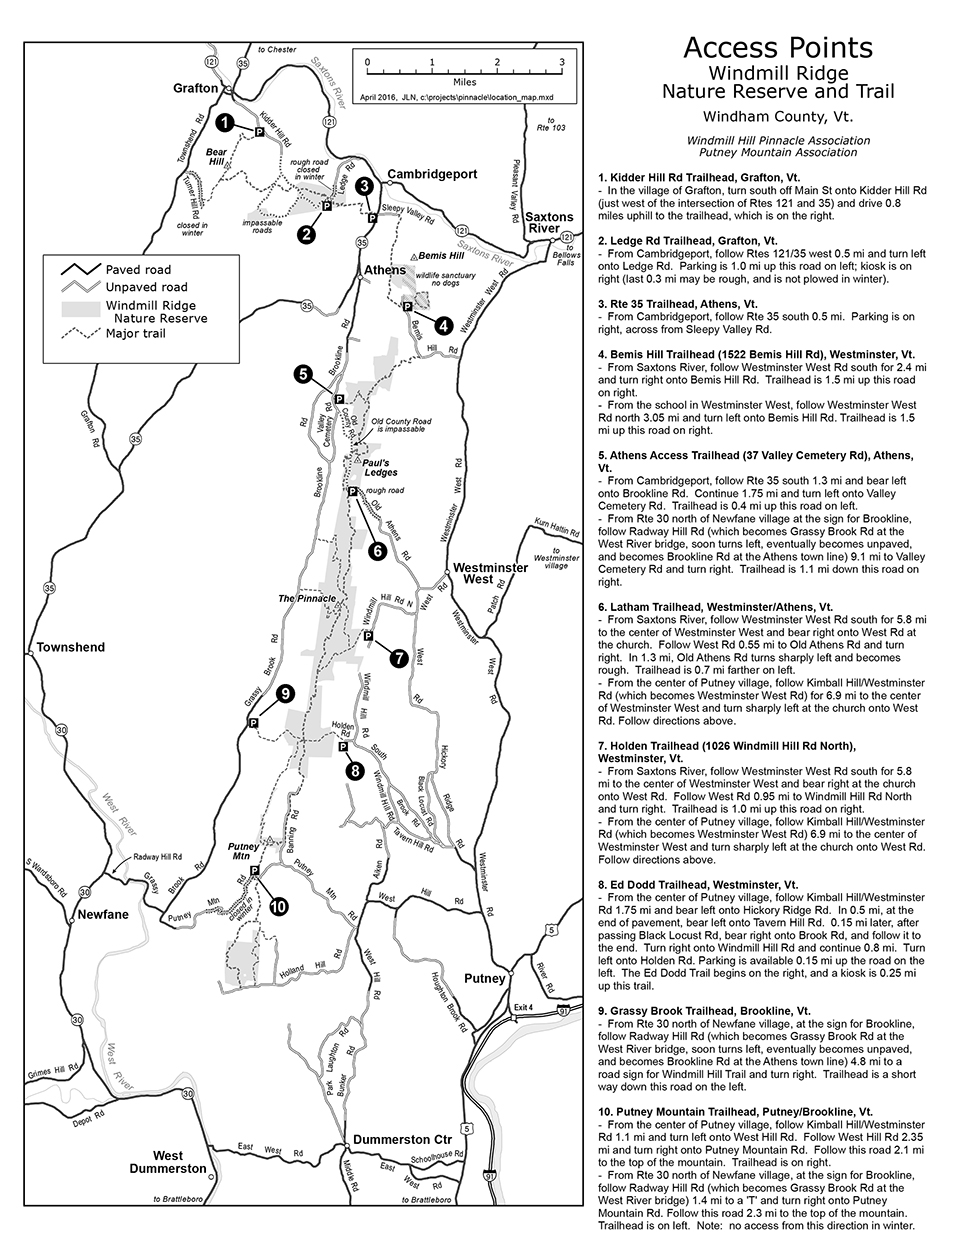 Windmill Hill Pinnacle Association Access Points Map